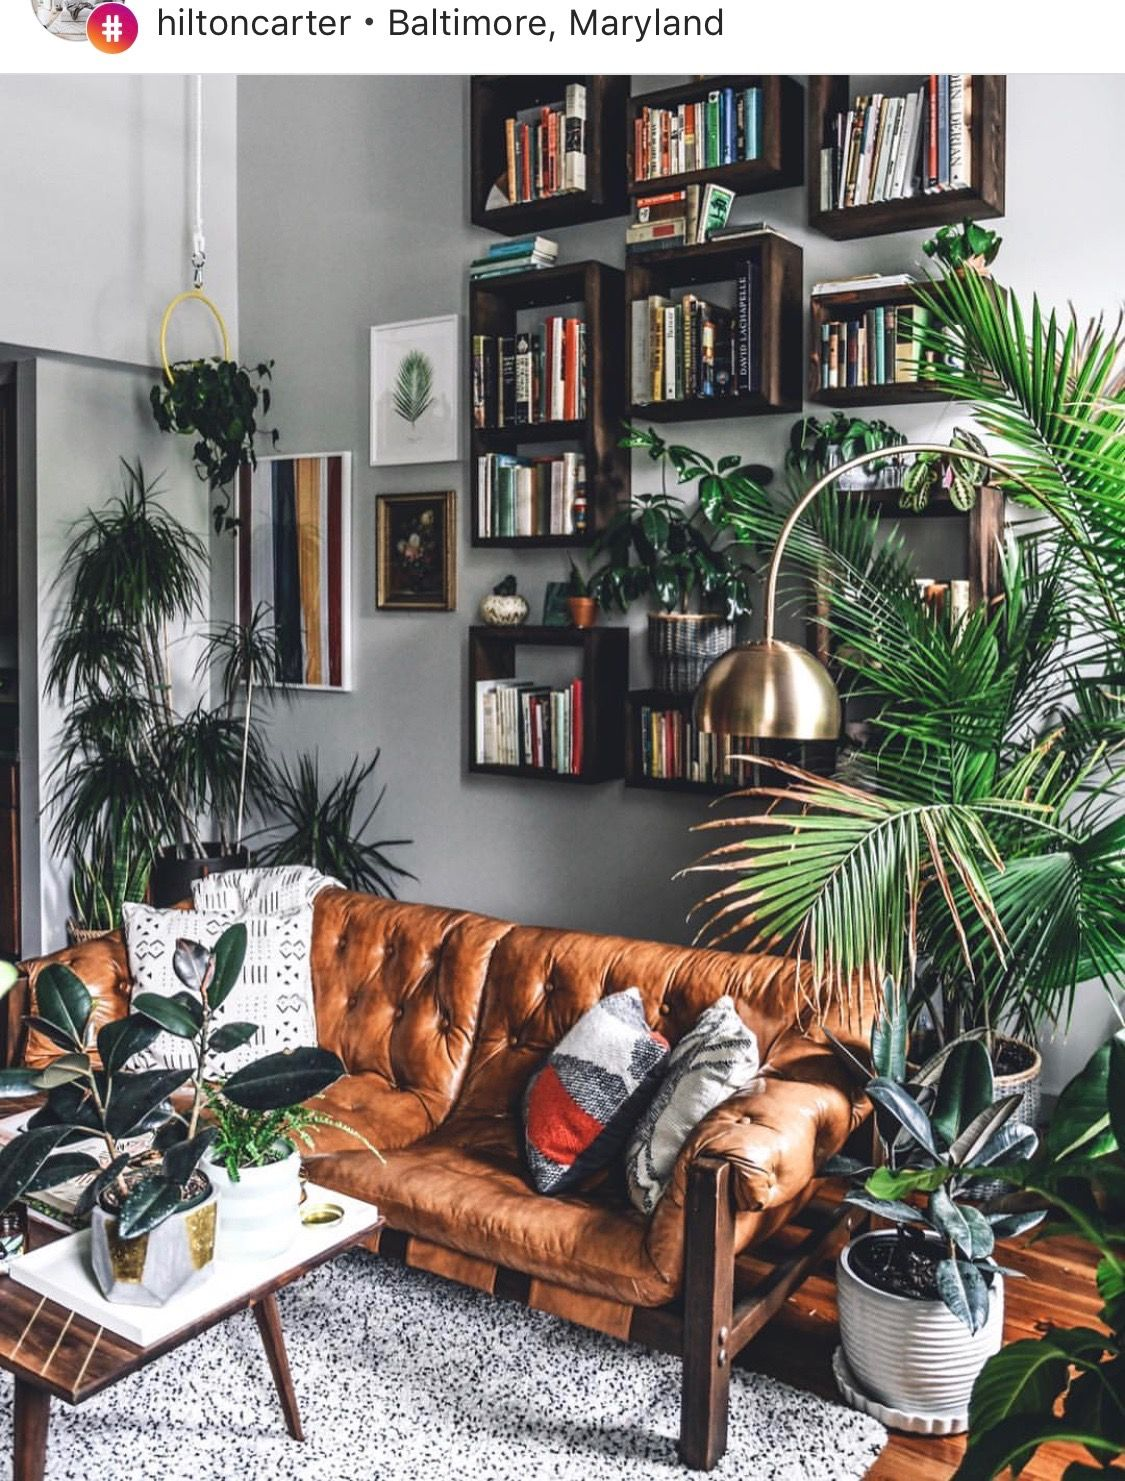 I Love Everything About This Space The Feel The Look It Looks